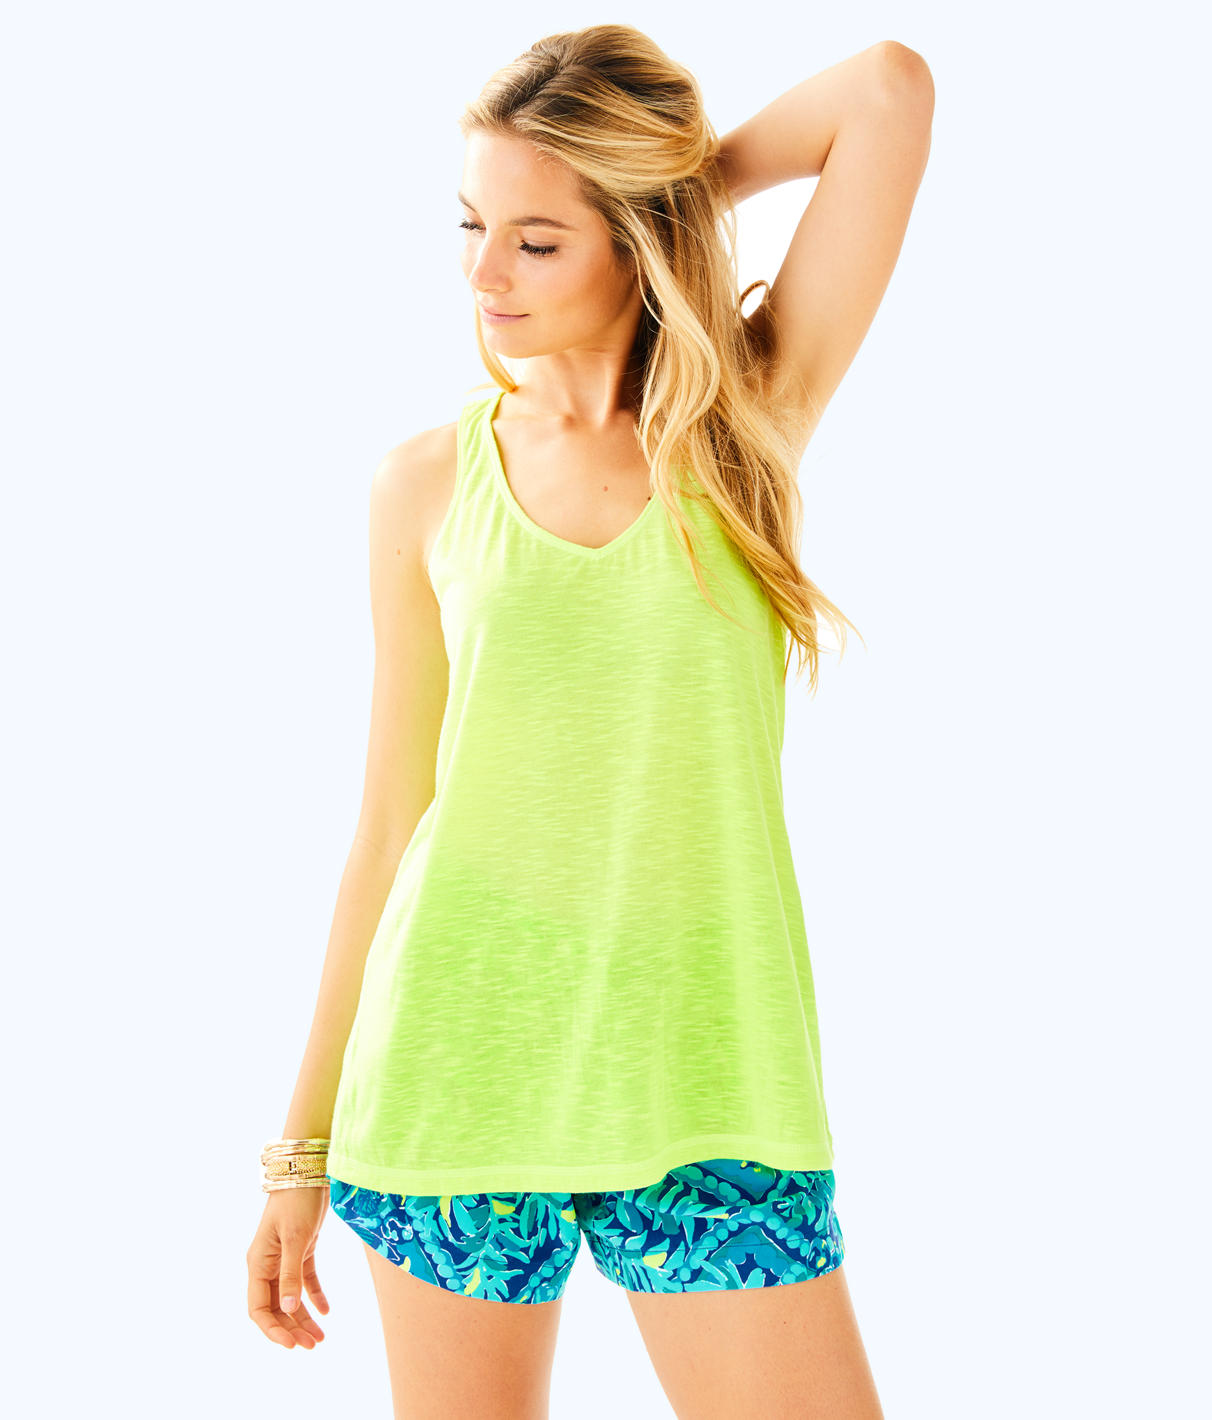 Lilly Pulitzer Lilly Pulitzer Womens Luxletic Anisa Tank Top